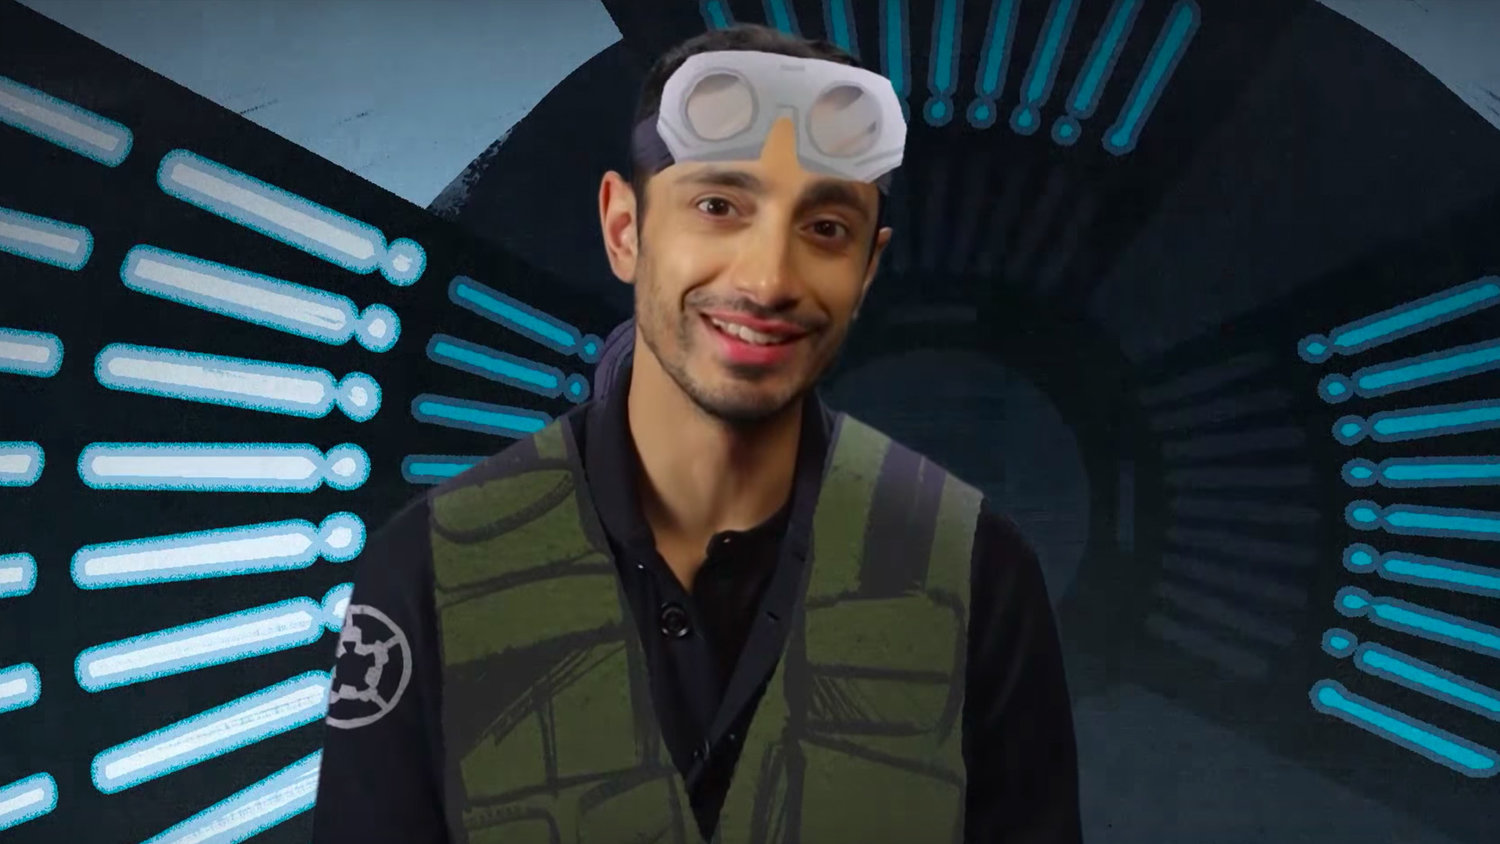 Riz Ahmed Talks About His First Day Filming ROGUE ONE: A STAR WARS STORY